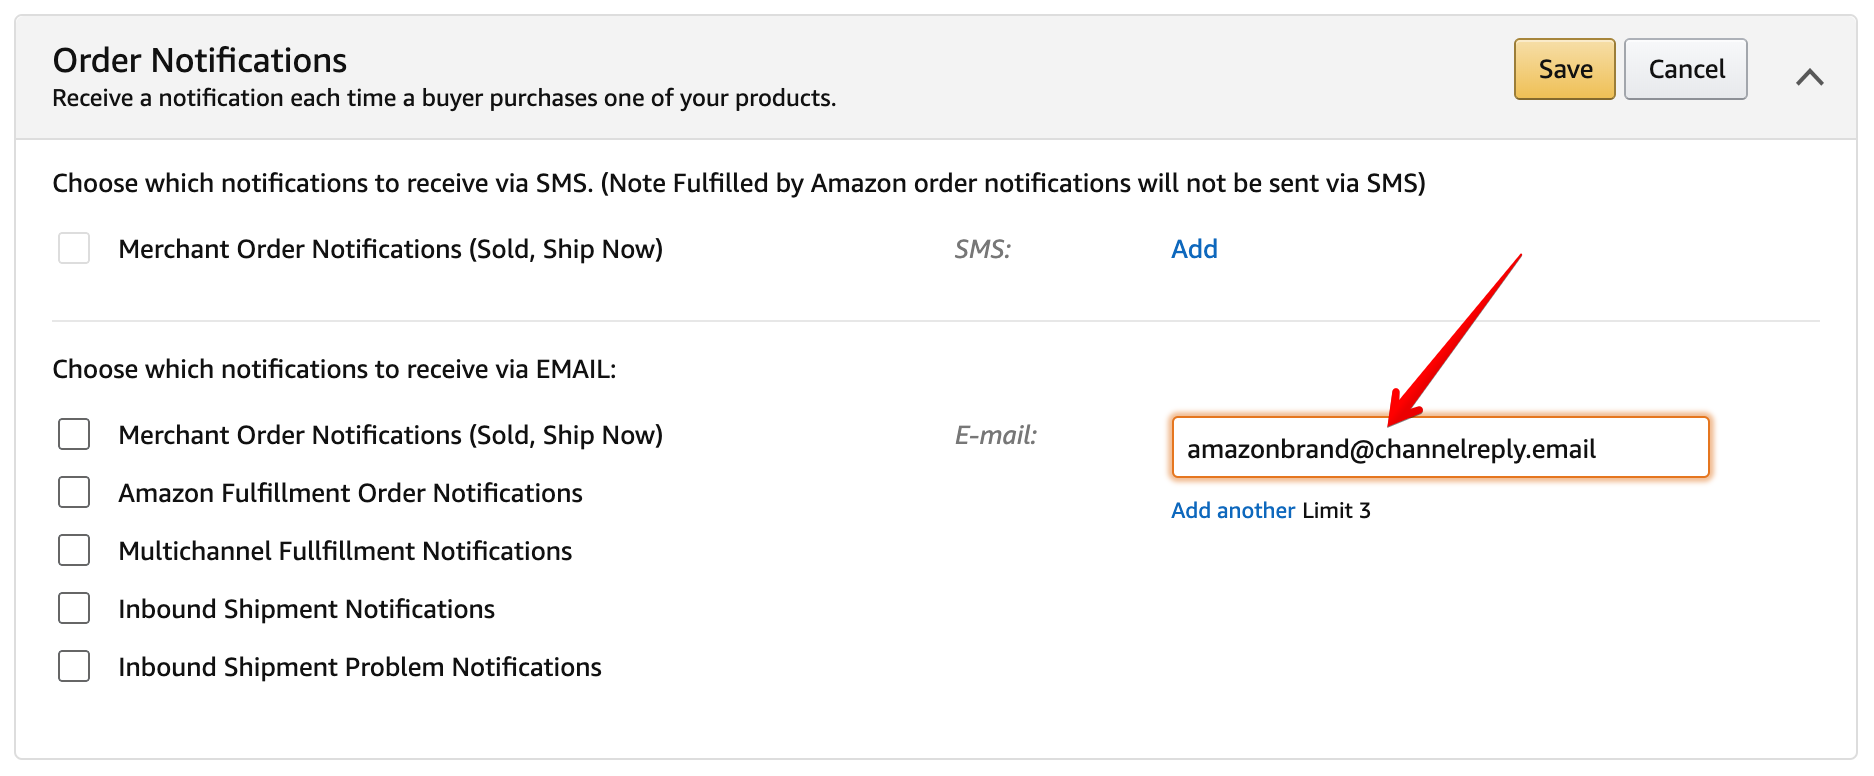 How to Send Amazon Notifications through ChannelReply